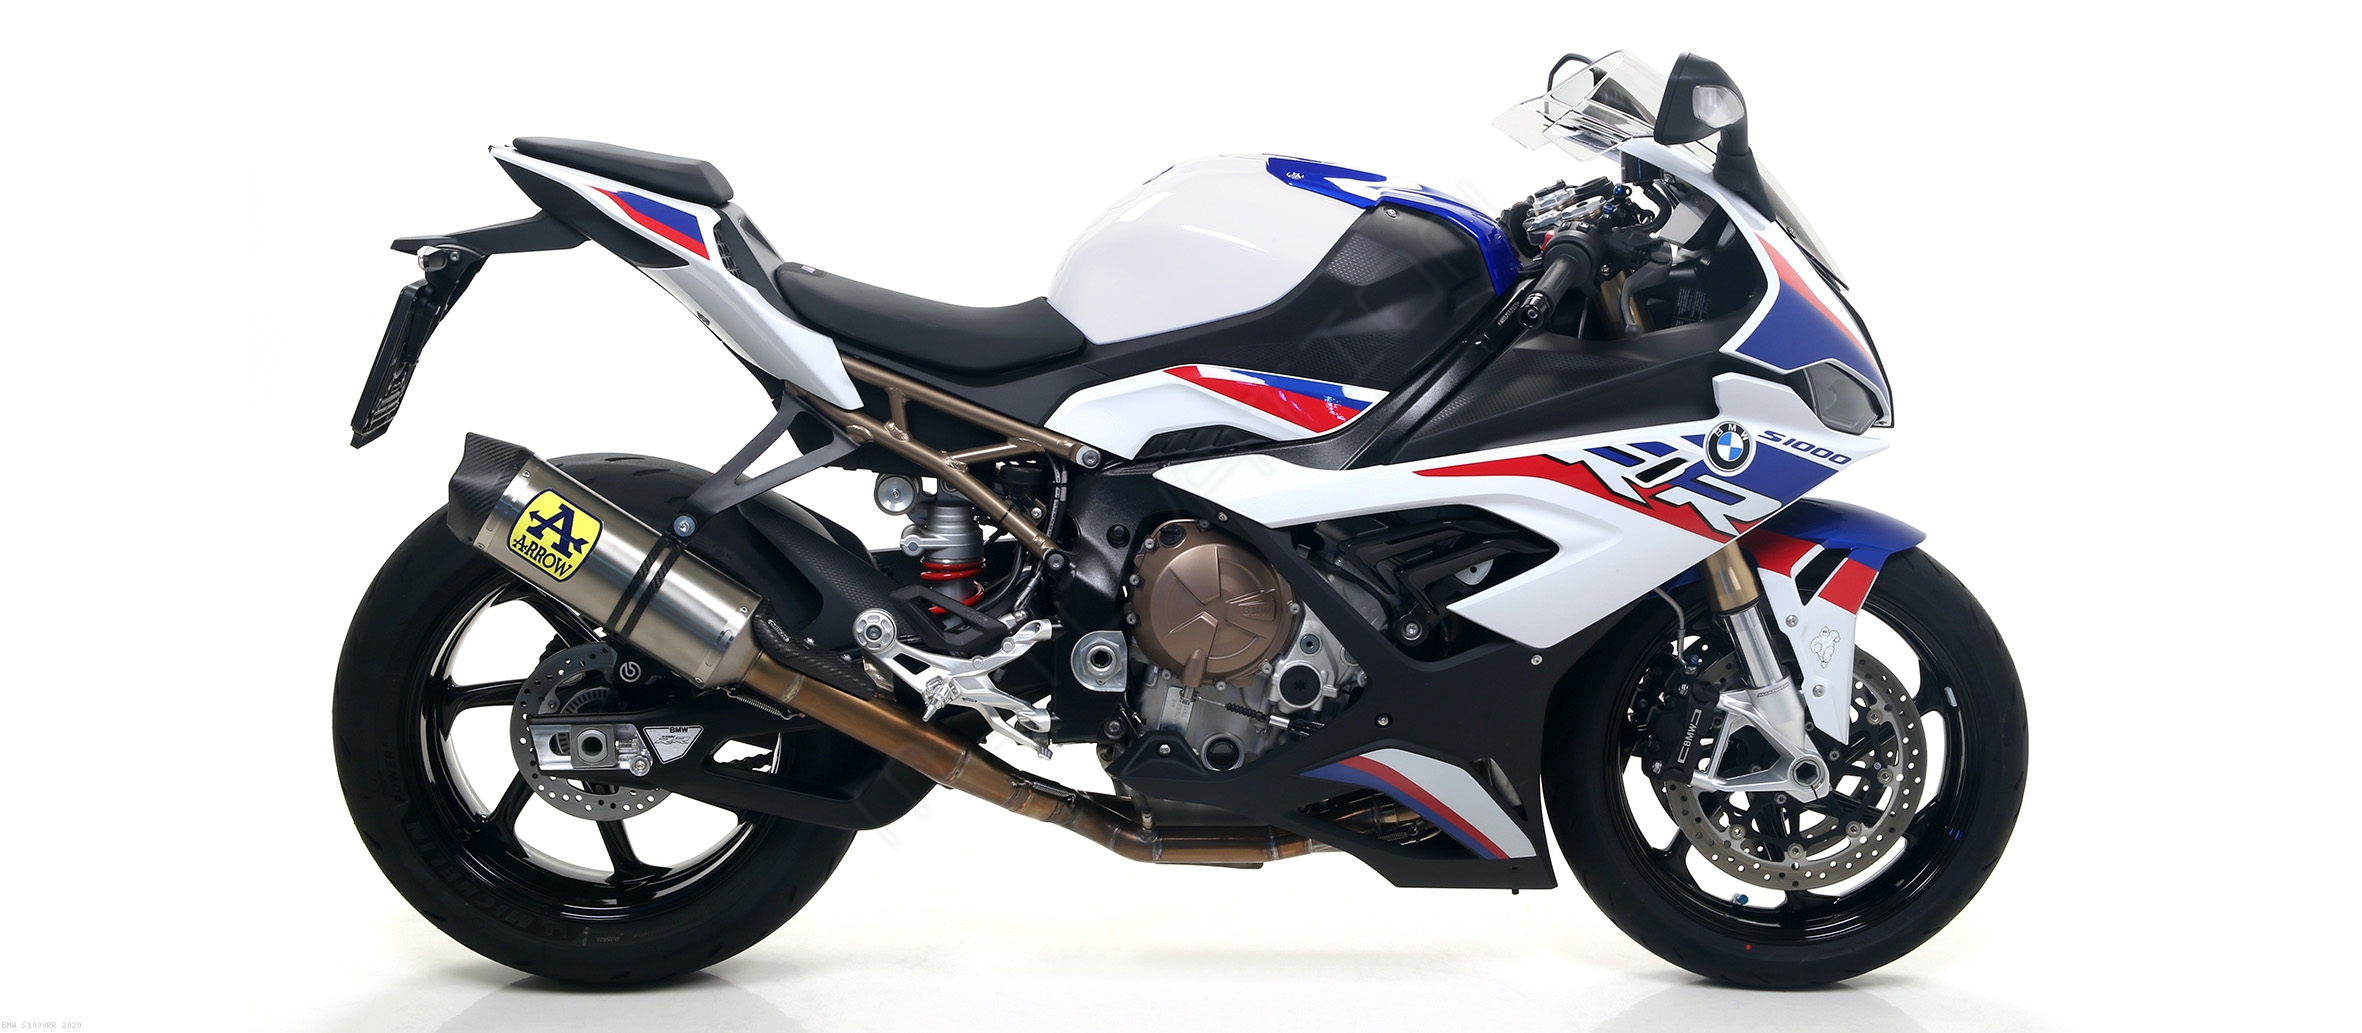 competition full system exhaust by arrow bmw    s1000rr    2020  71204ck